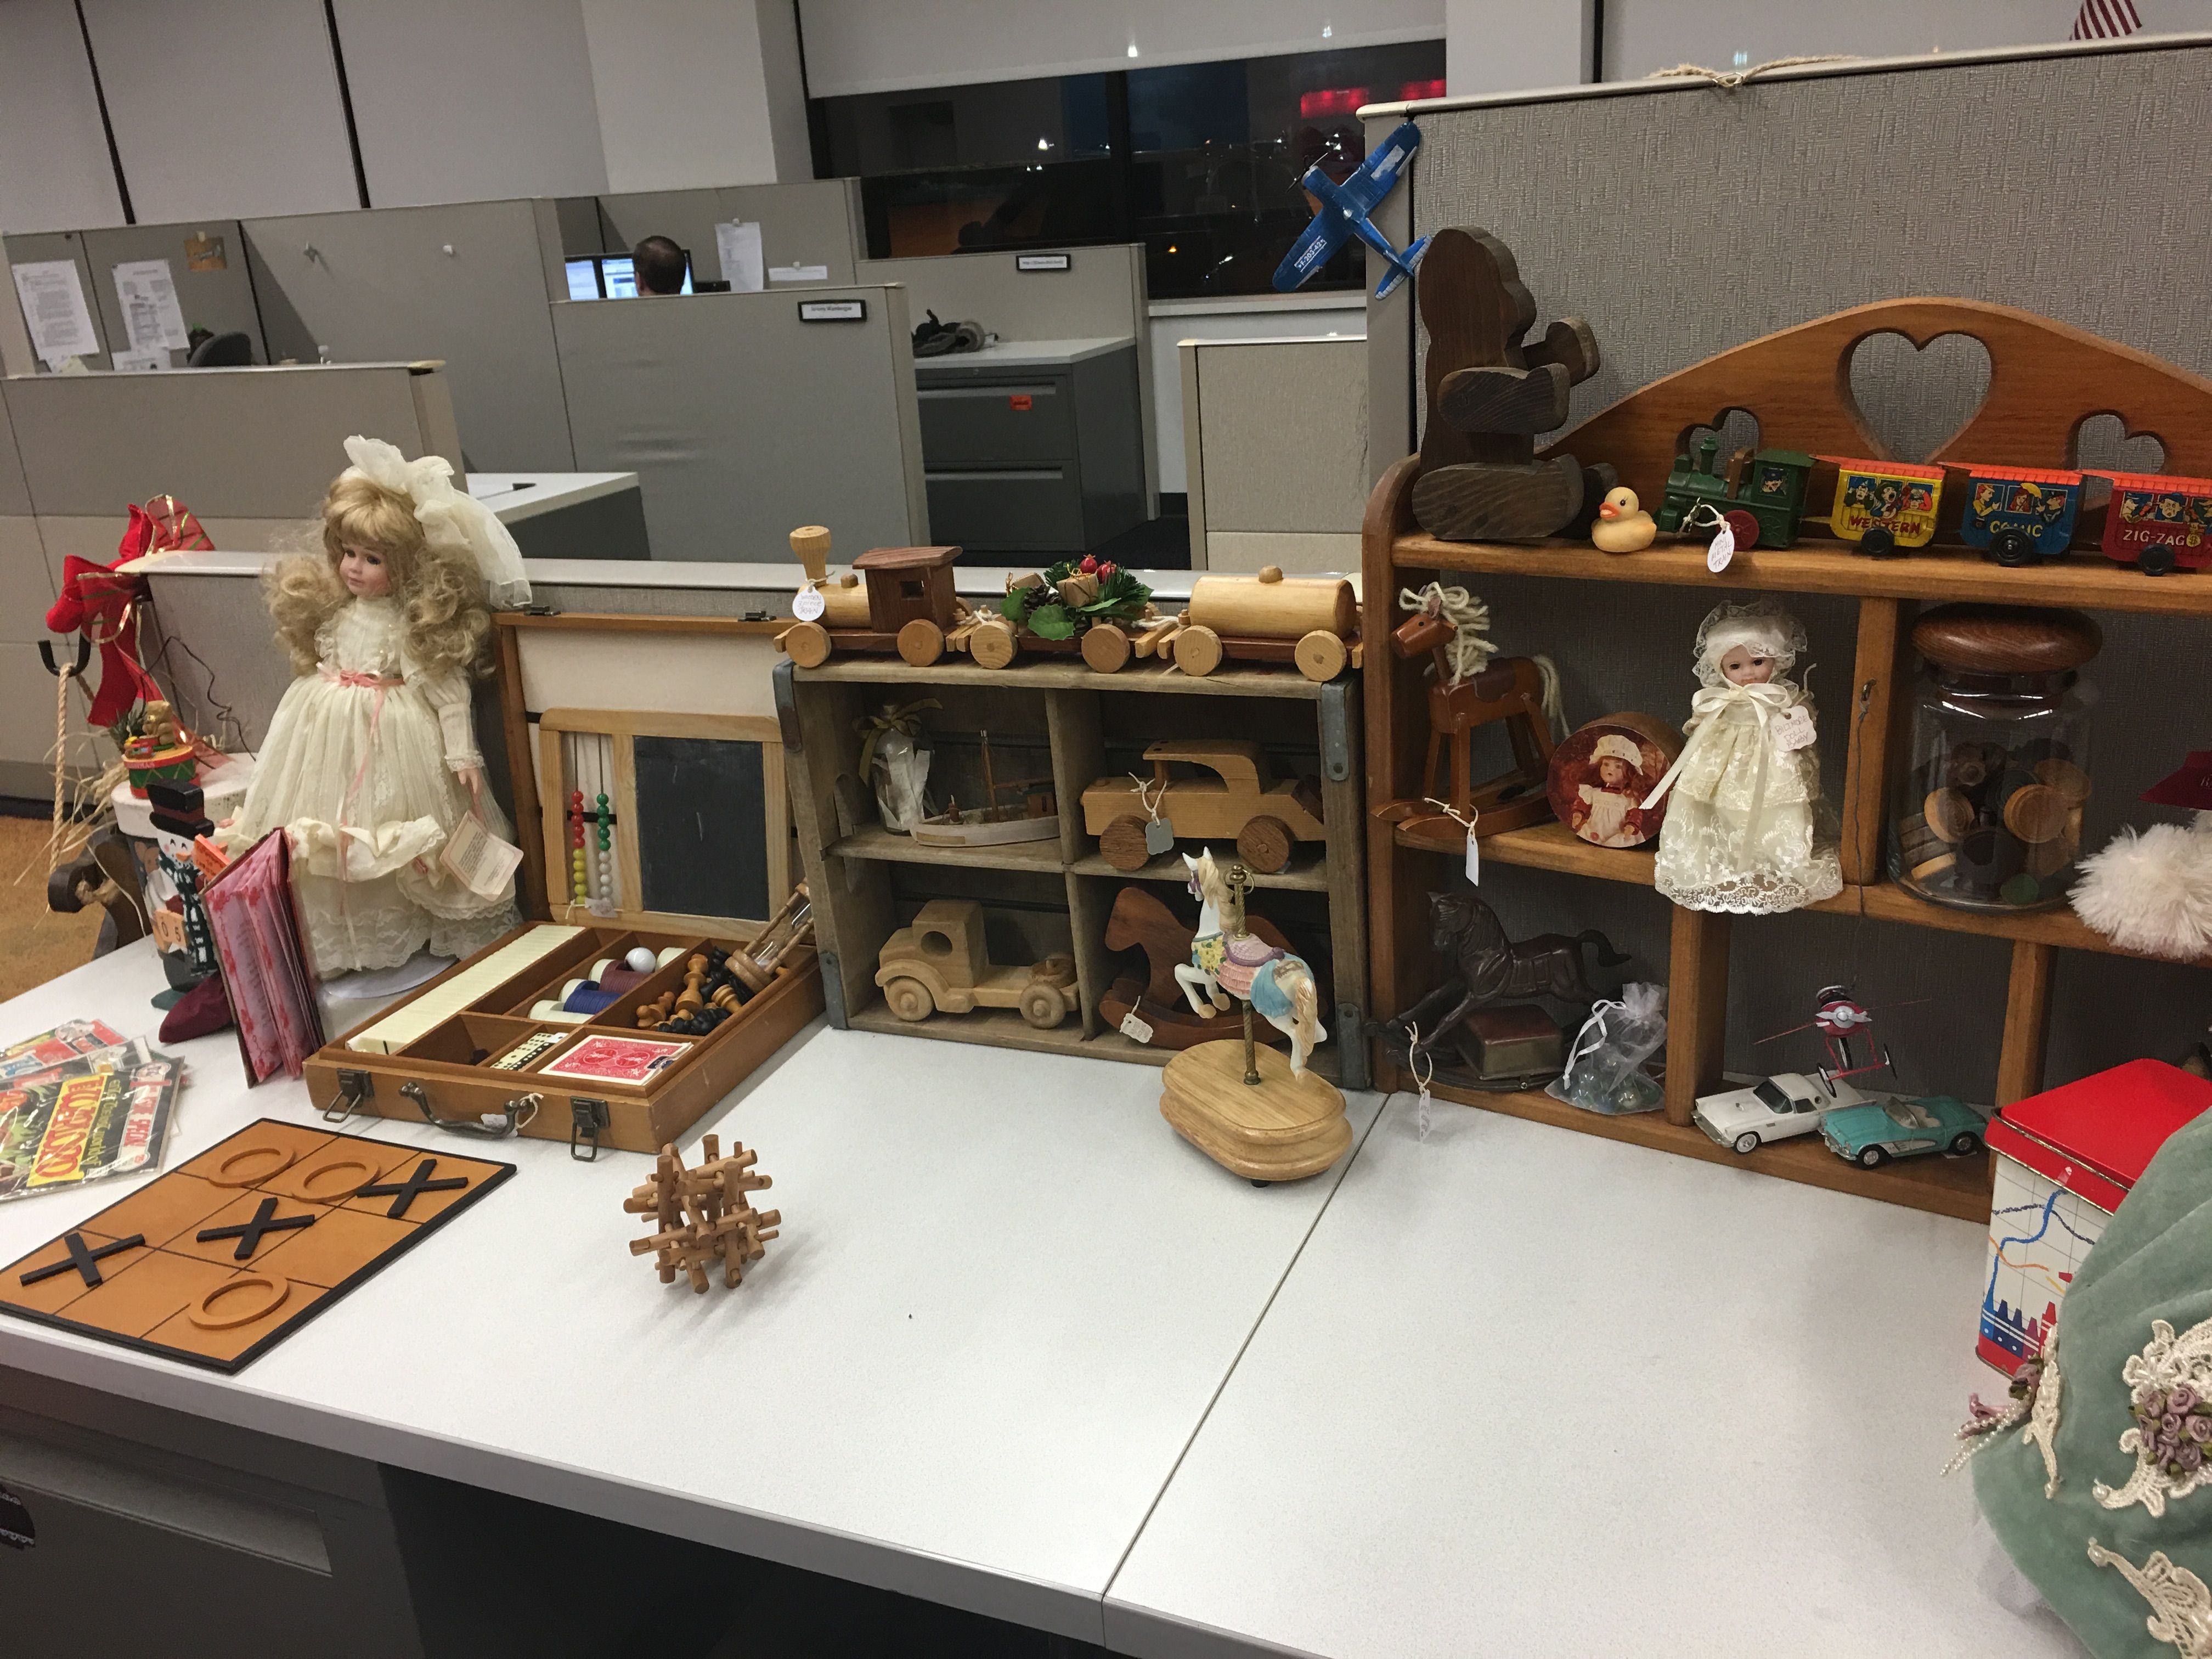 Christmas cubicle decorations - Cubicle Decorating Toy Shop Christmas 2016